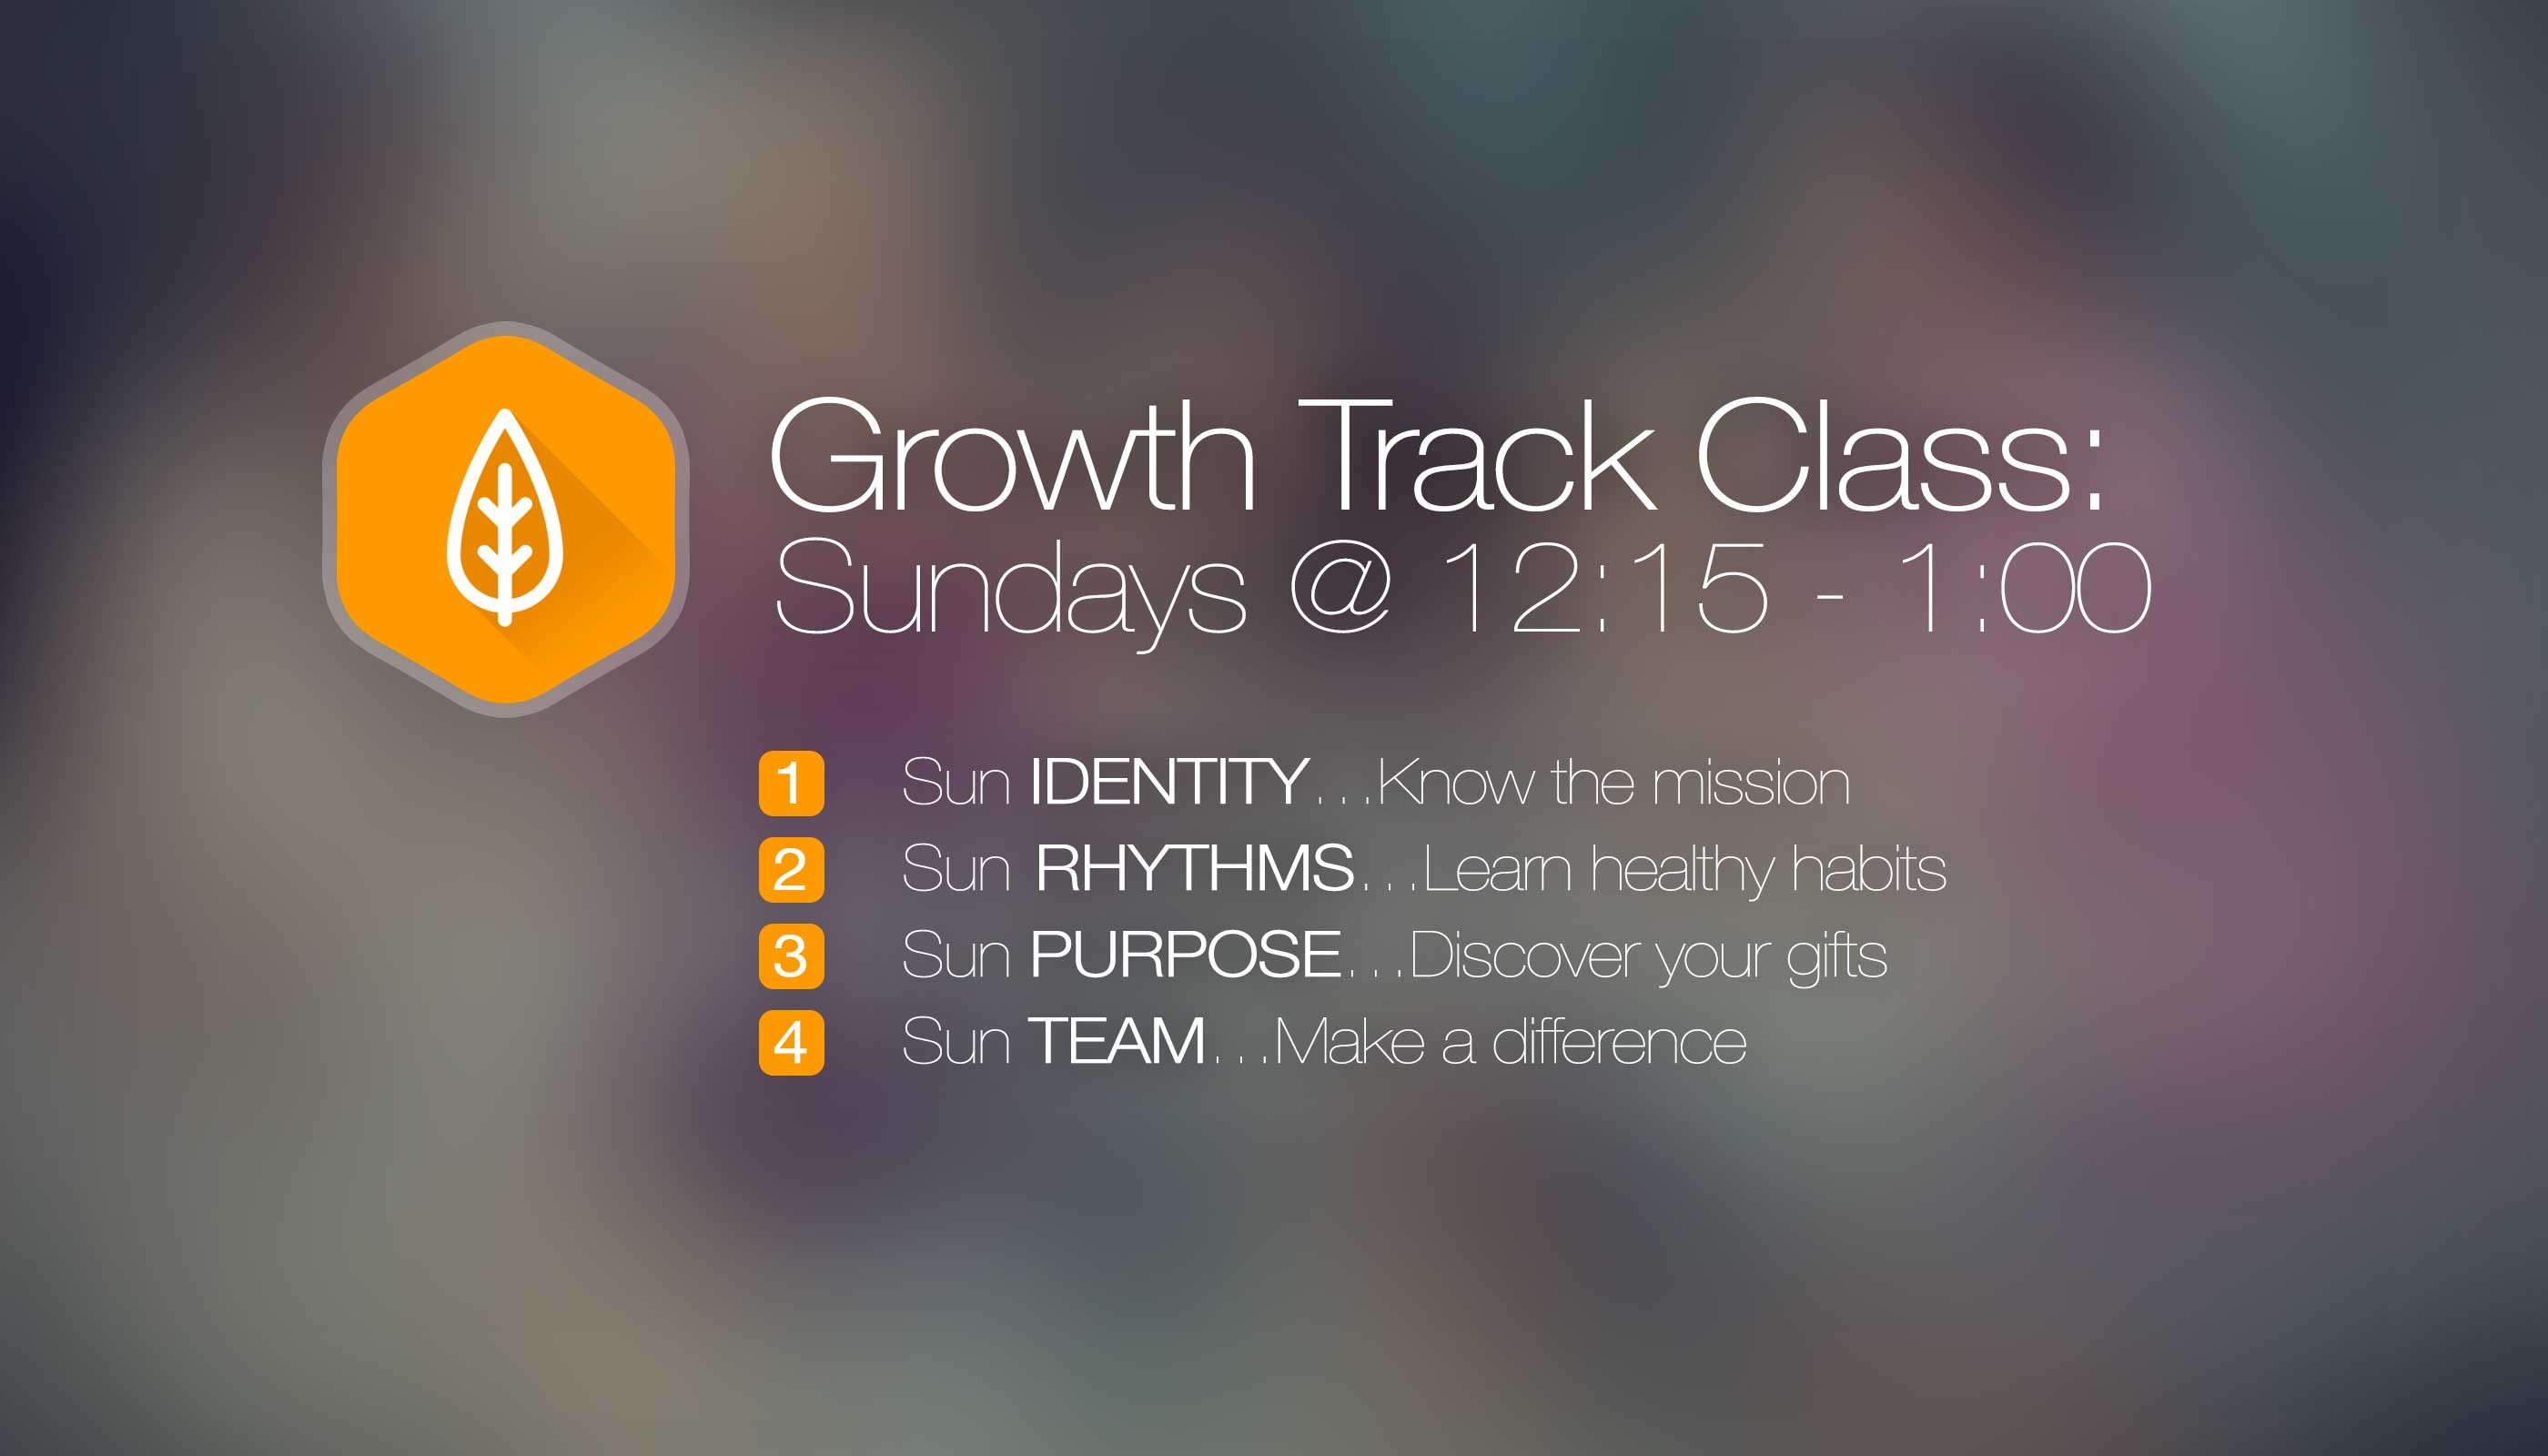 Life Church Lisle, IL Growth Track Class Schedule